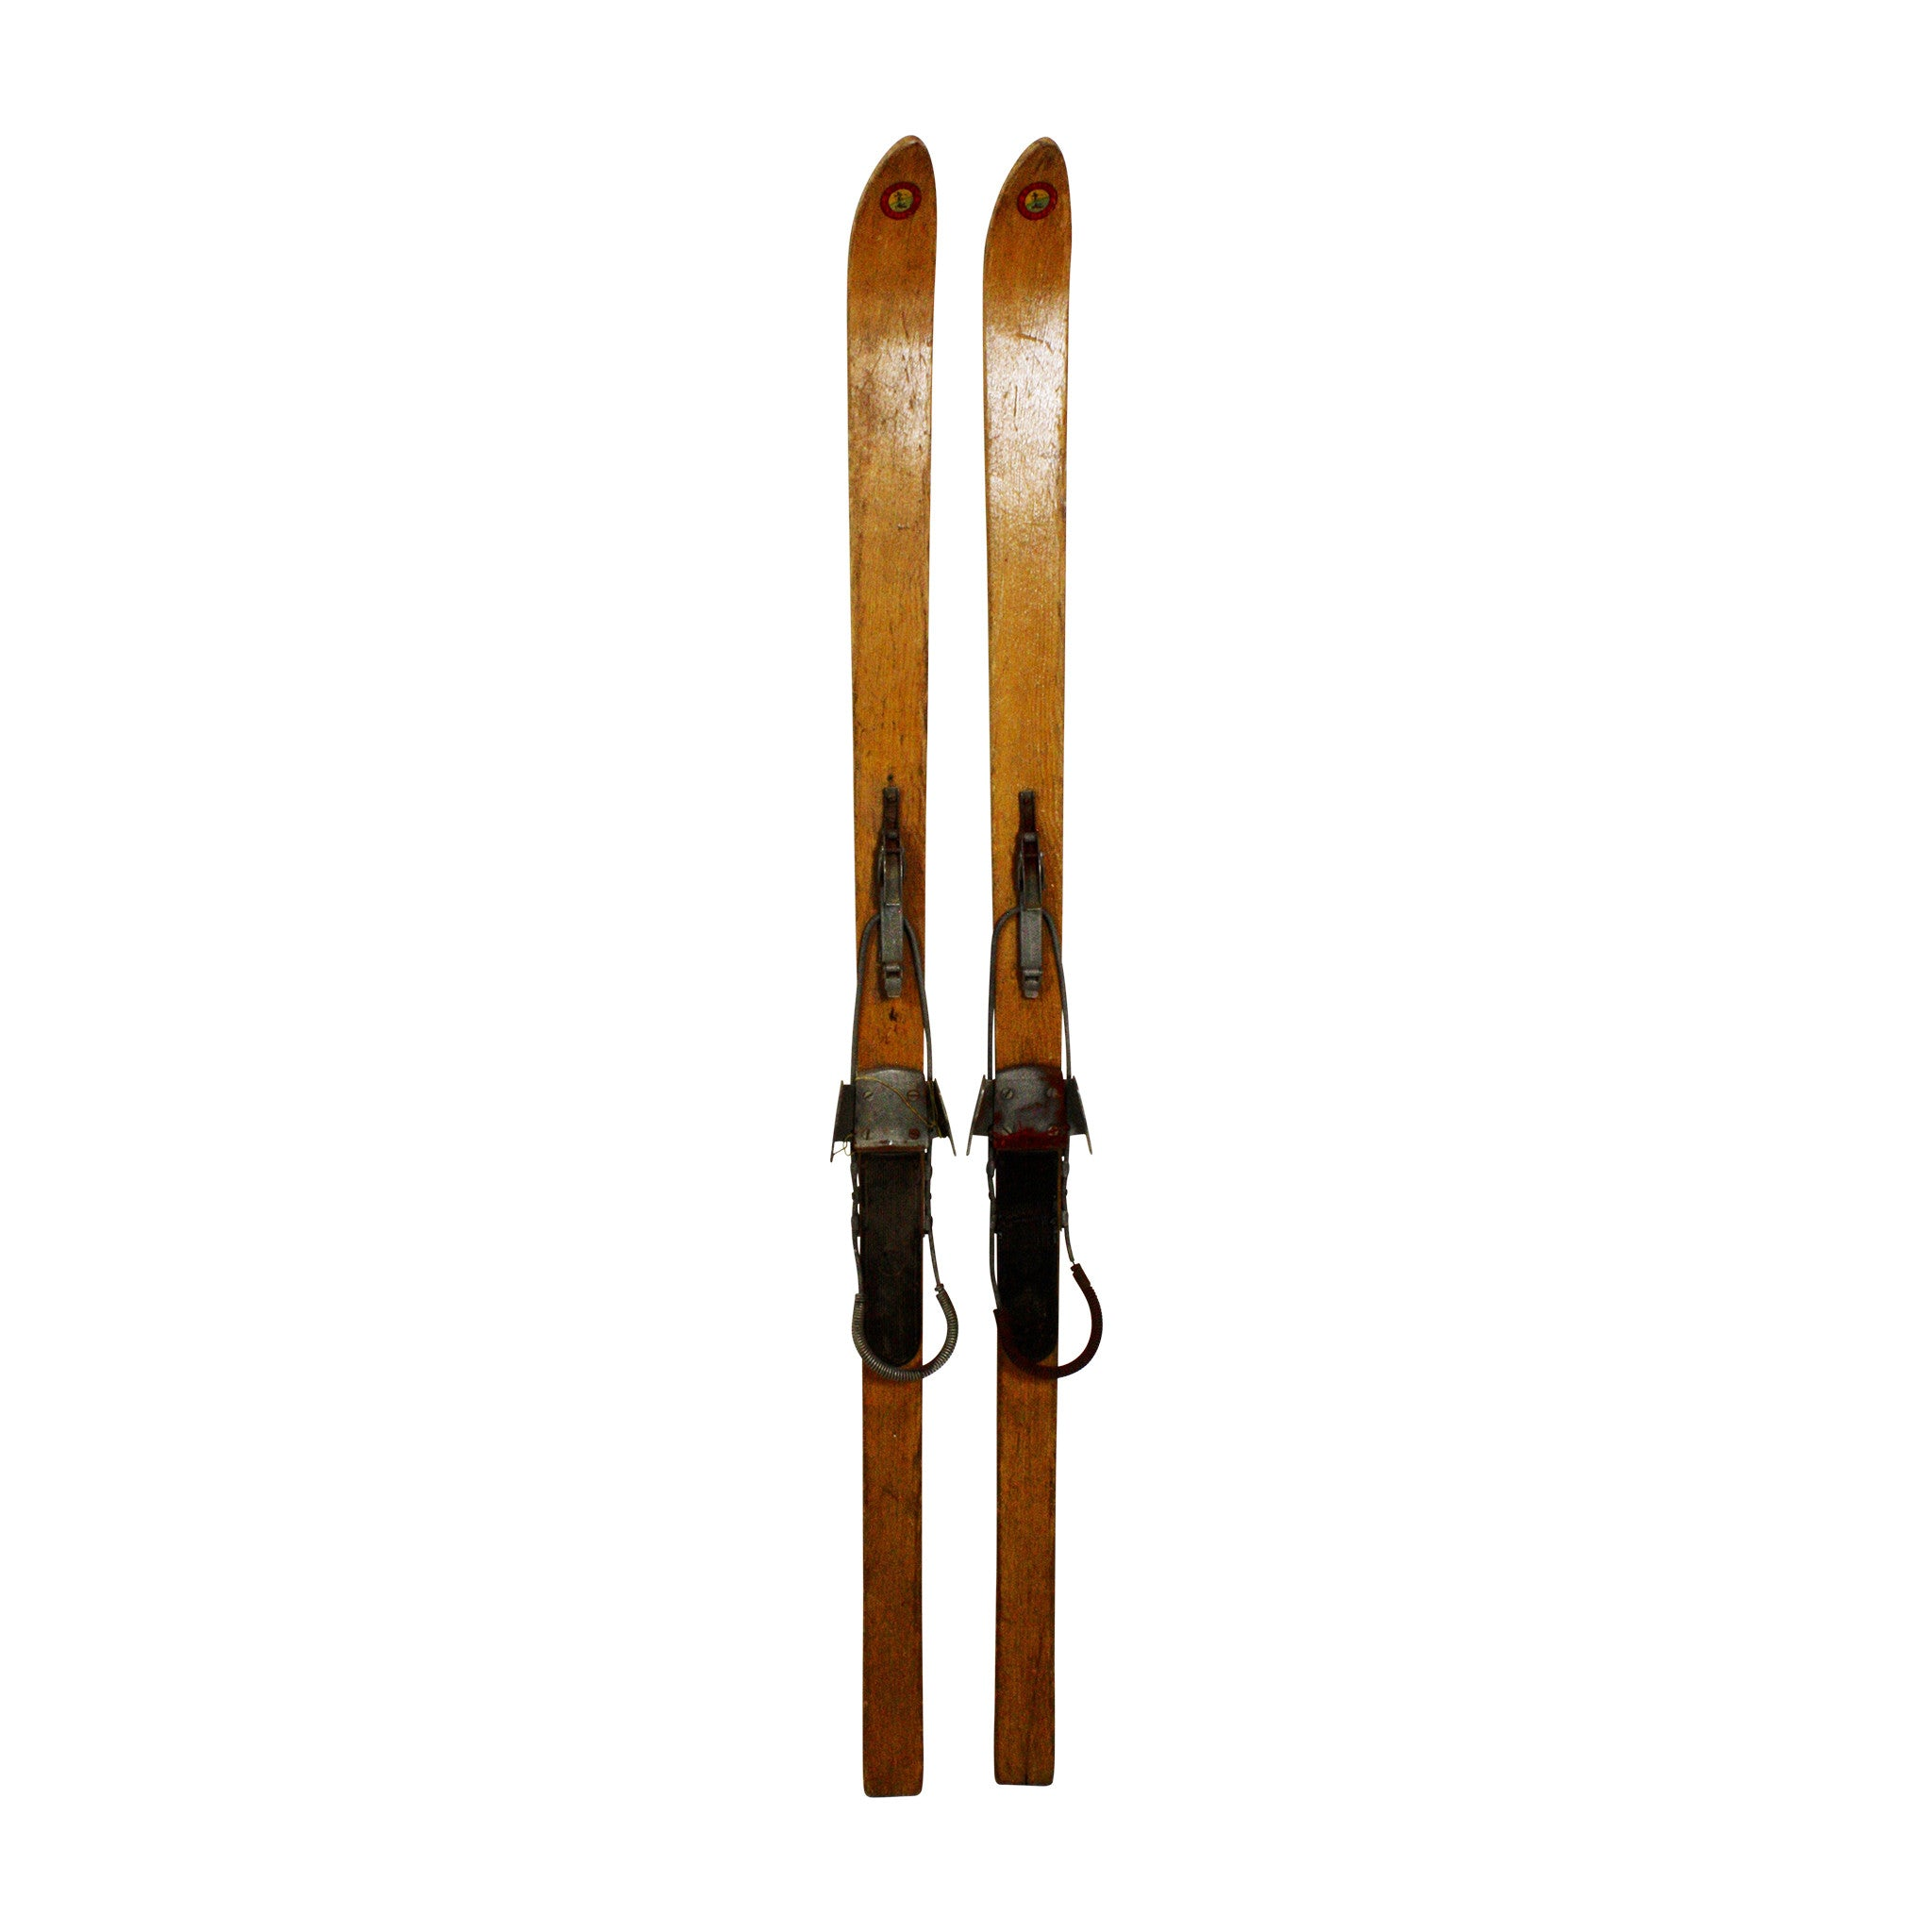 E. Schurich German Skis